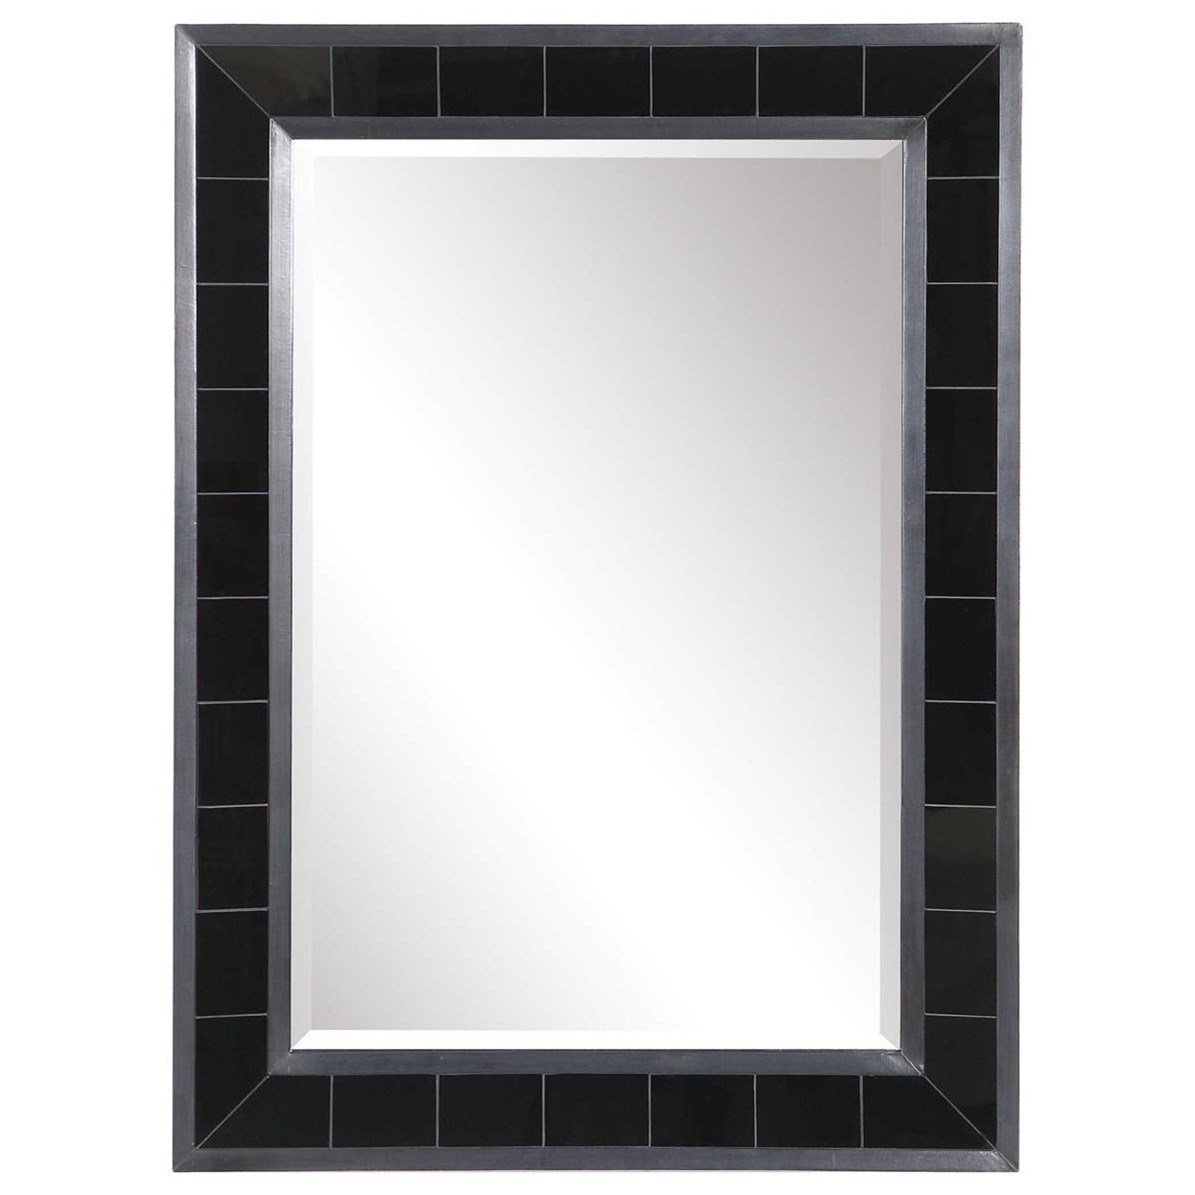 Lonara Black Tile Mirror